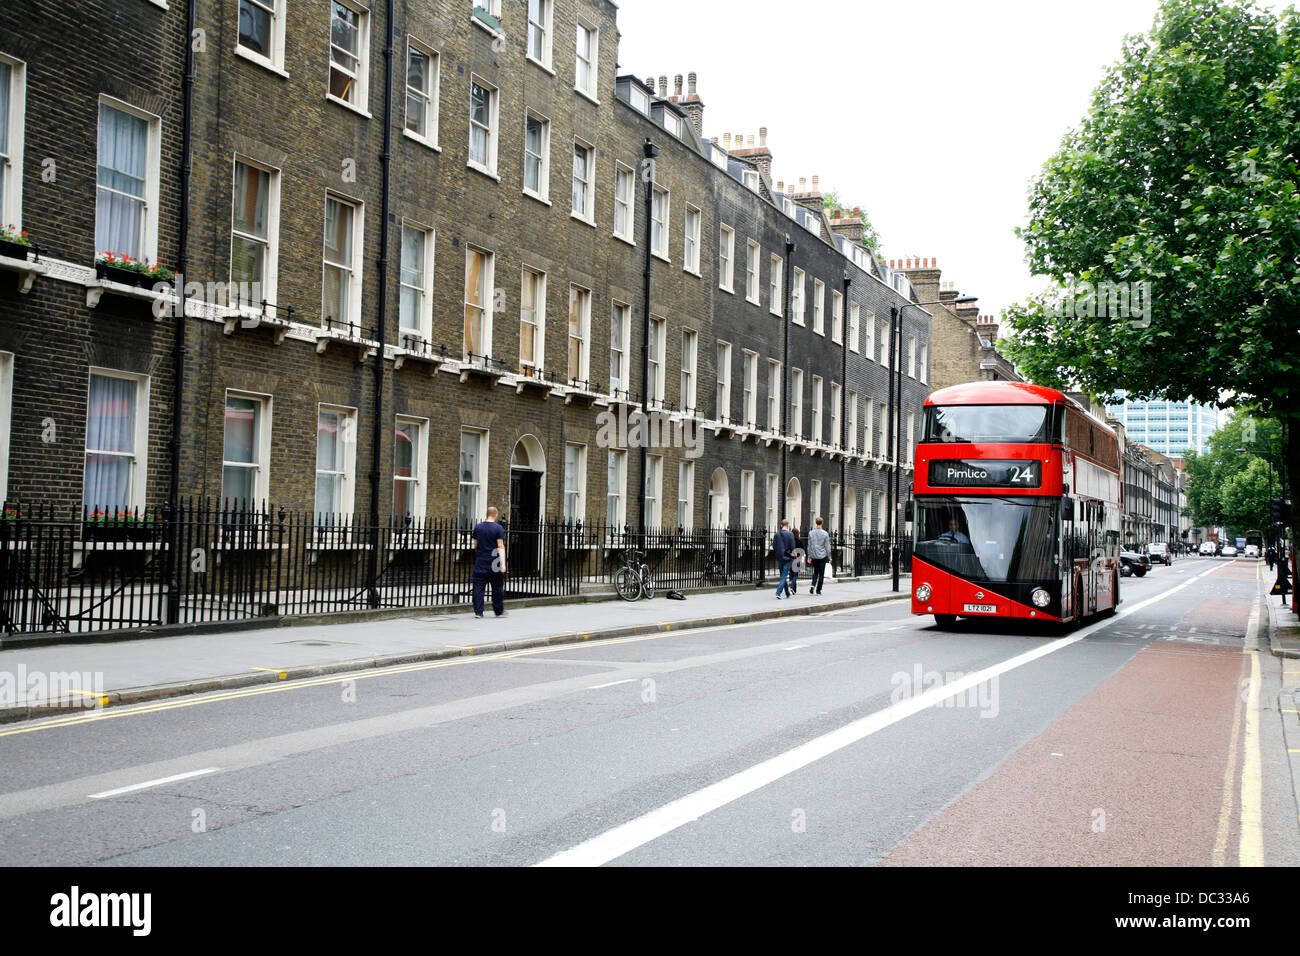 New Routemaster bus number 24 travelling along Gower Street, Bloomsbury, London, UK - Stock Image